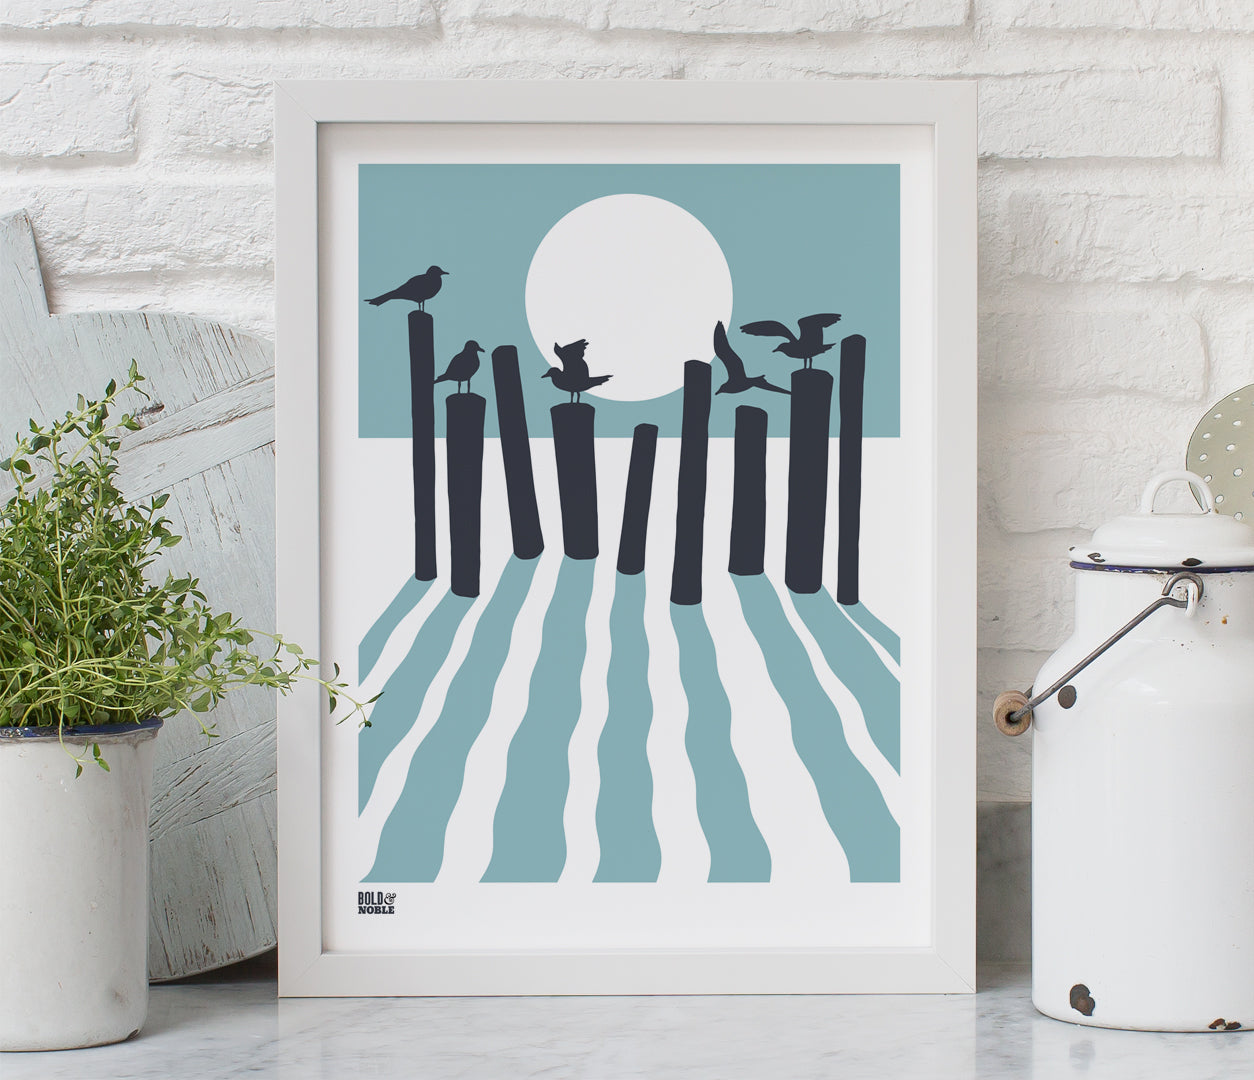 On The Beach in Chalk Grey, Printed Seaside and Sunset Wall Art in Coastal Blue